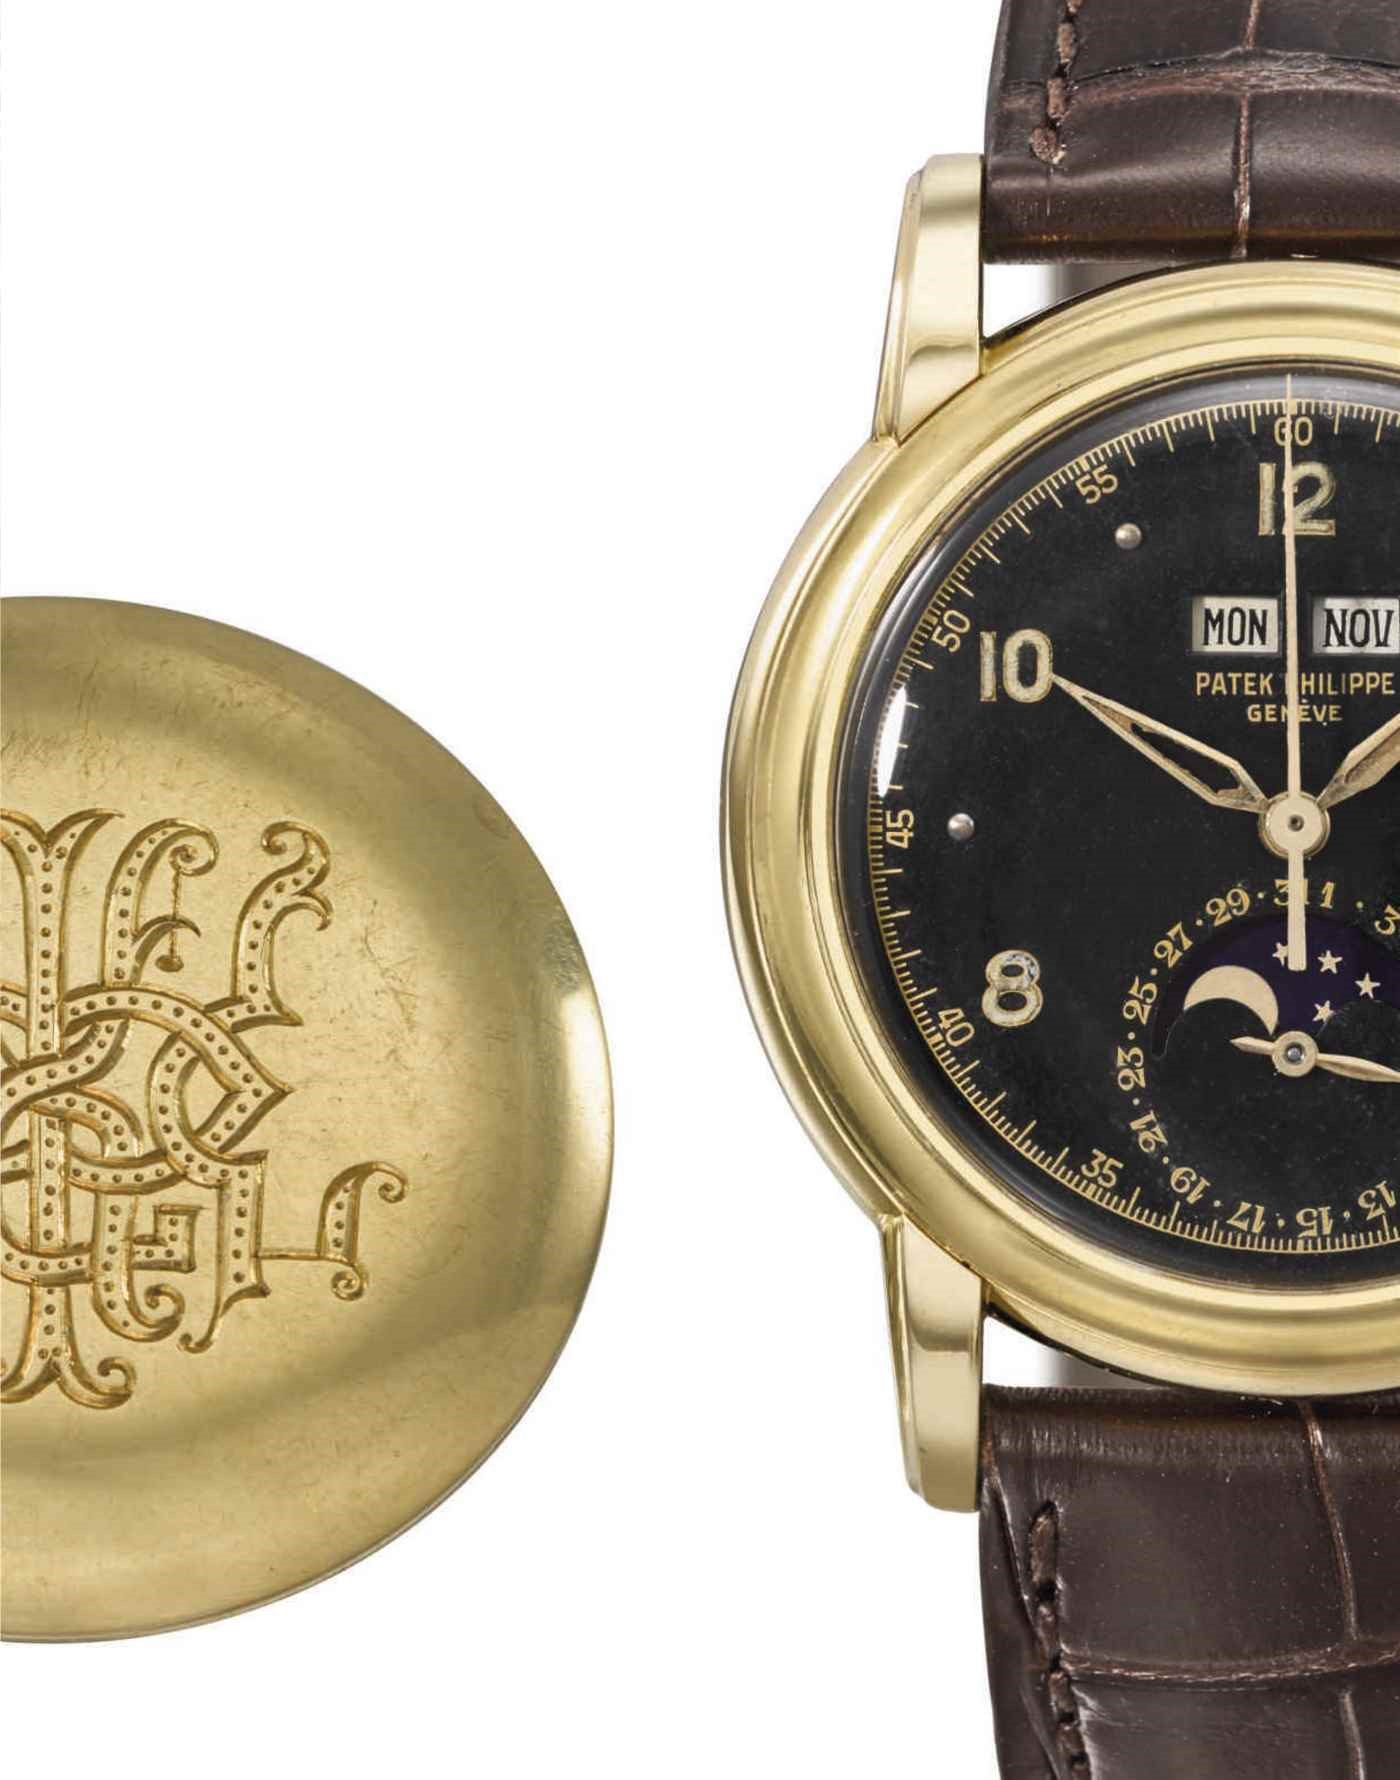 Rare Watches and a Rolex After auction at Christies